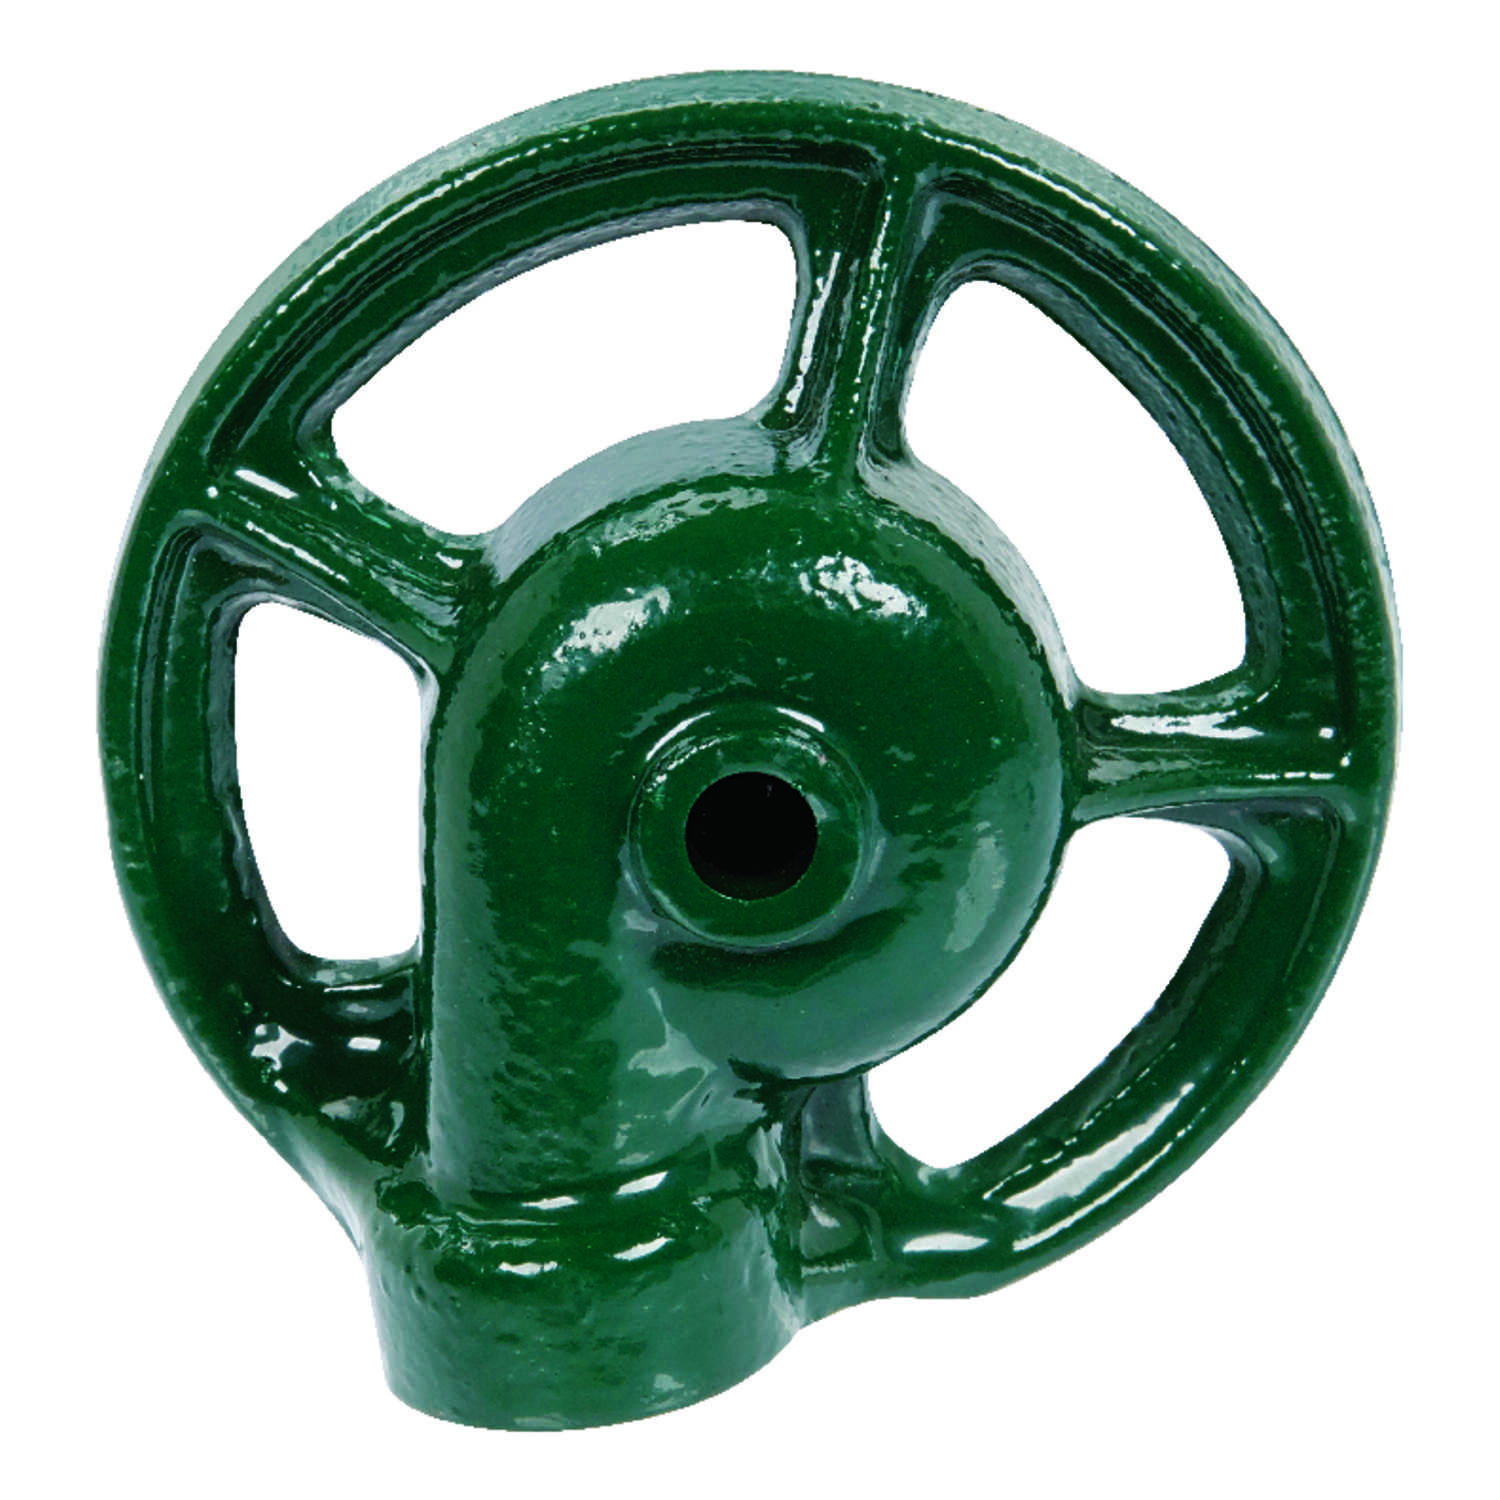 Ace  Metal  Sled Base  Spot Sprinkler  700 sq. ft.